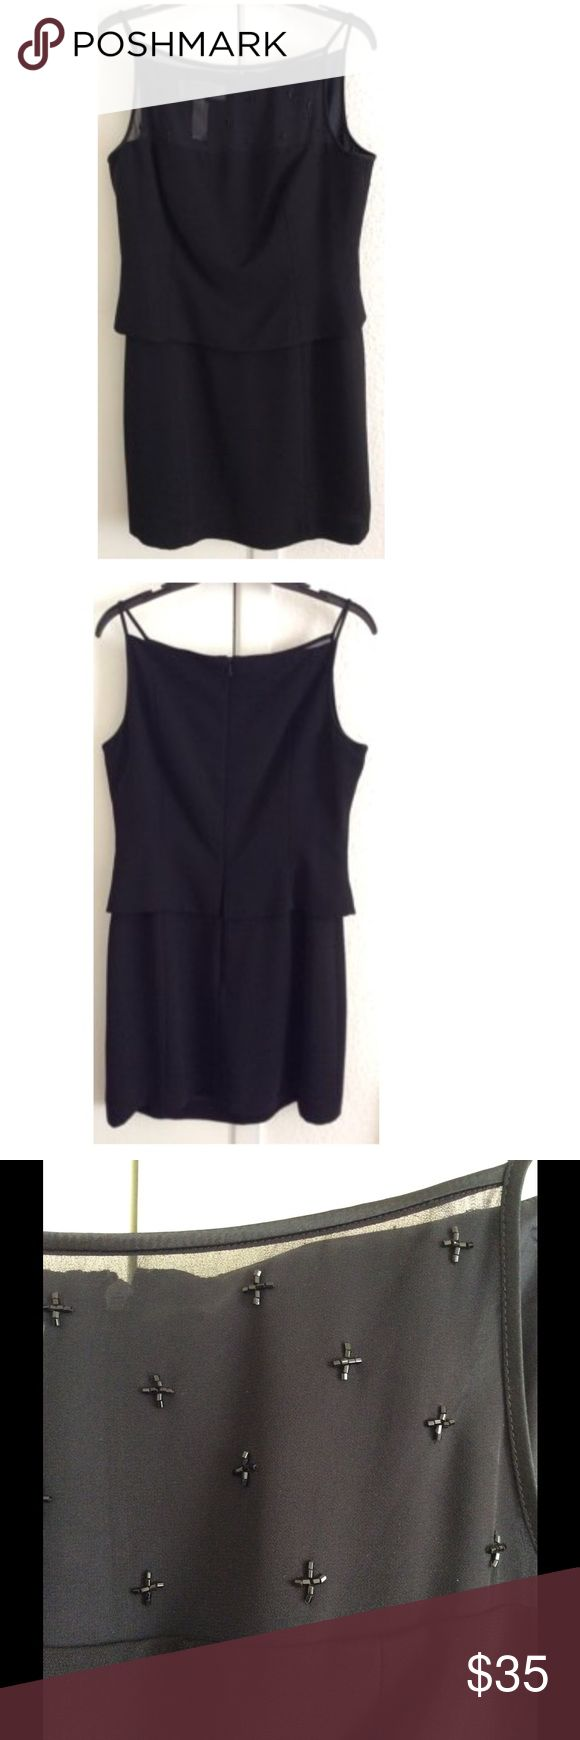 Black Bead Mesh Front  Petite Mini Dress Size: Petite Large. Measurements: bust- 36 inches, waist- 32 inches, hip- 38 inches, length- 30 inches. Material: 100% Polyester. Jones New York Dresses Mini